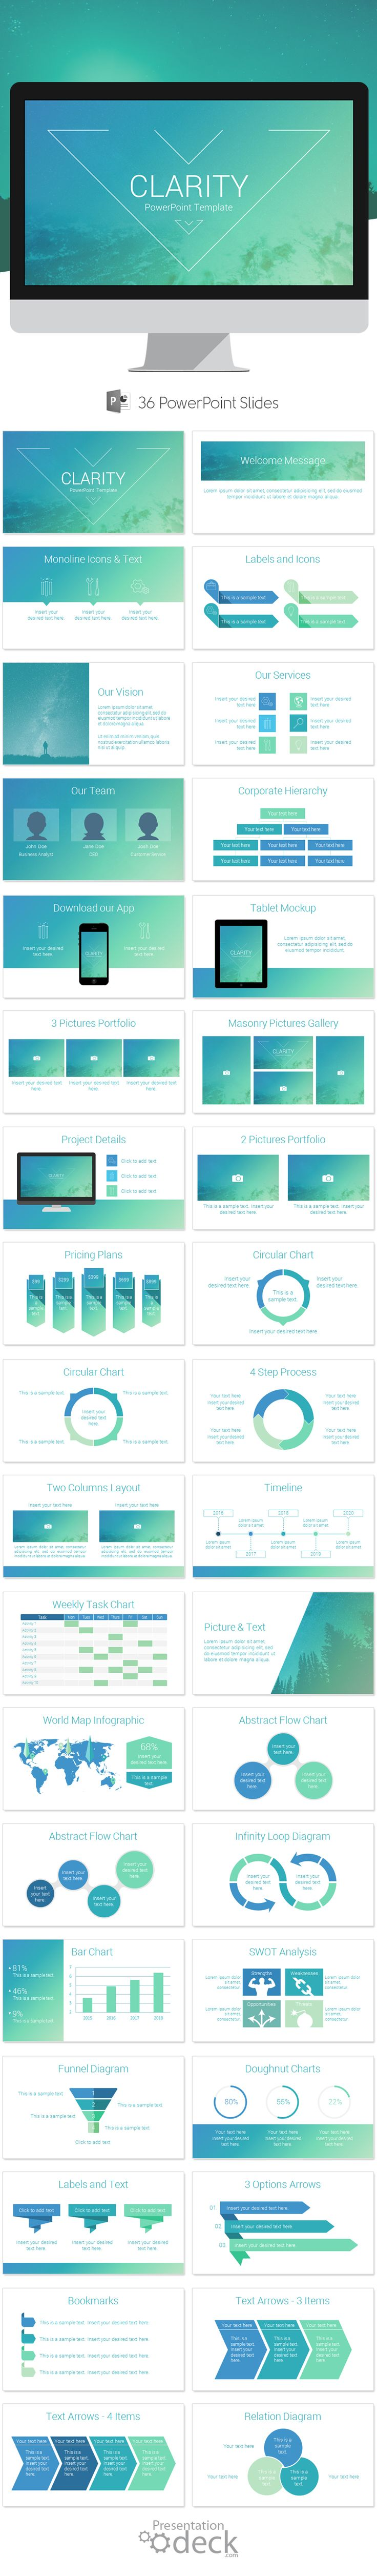 Clarity PowerPoint Template on Behance